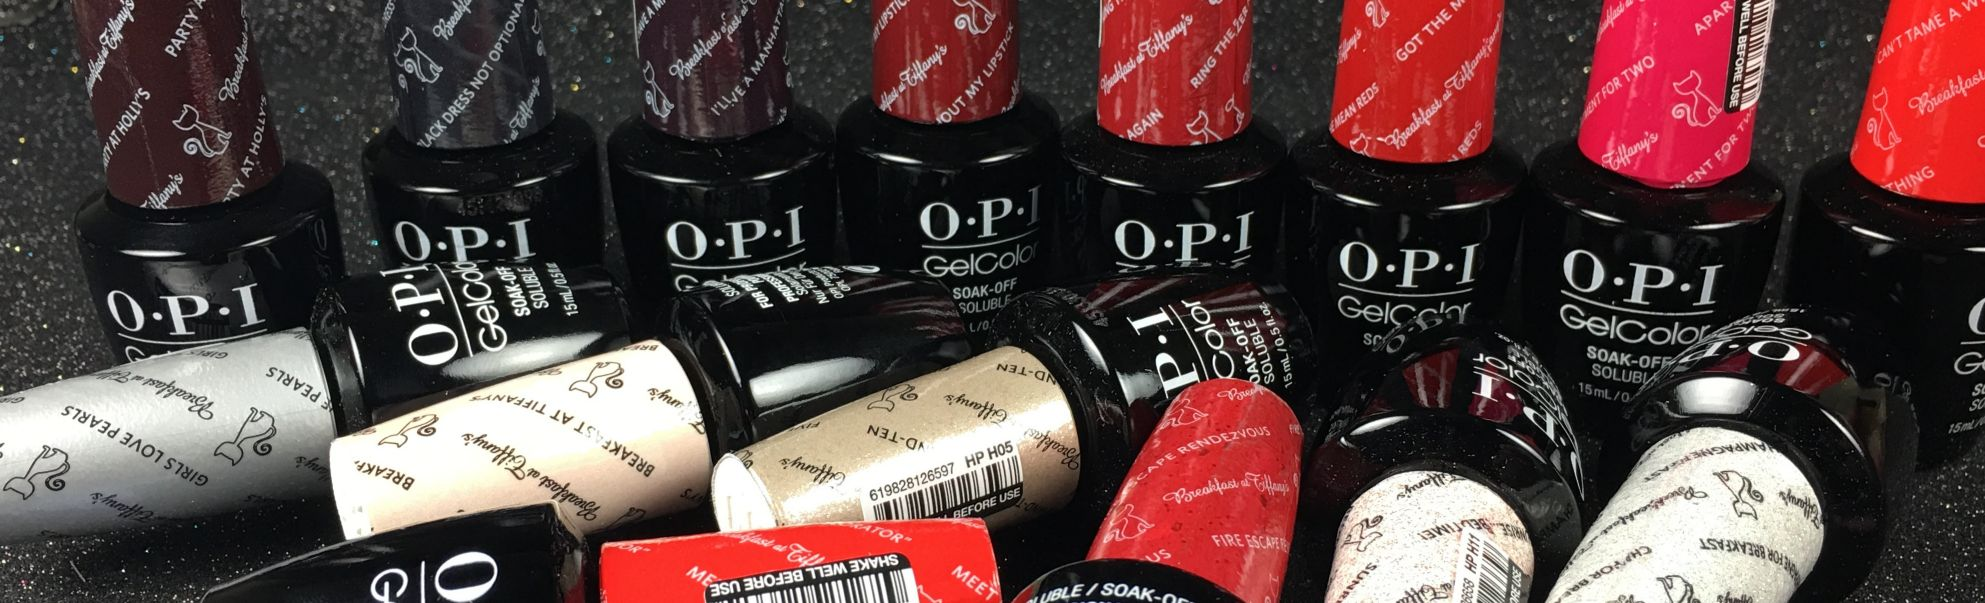 Gel Color by OPI HOLIDAY 2016 Breakfast at Tiffany's Collection